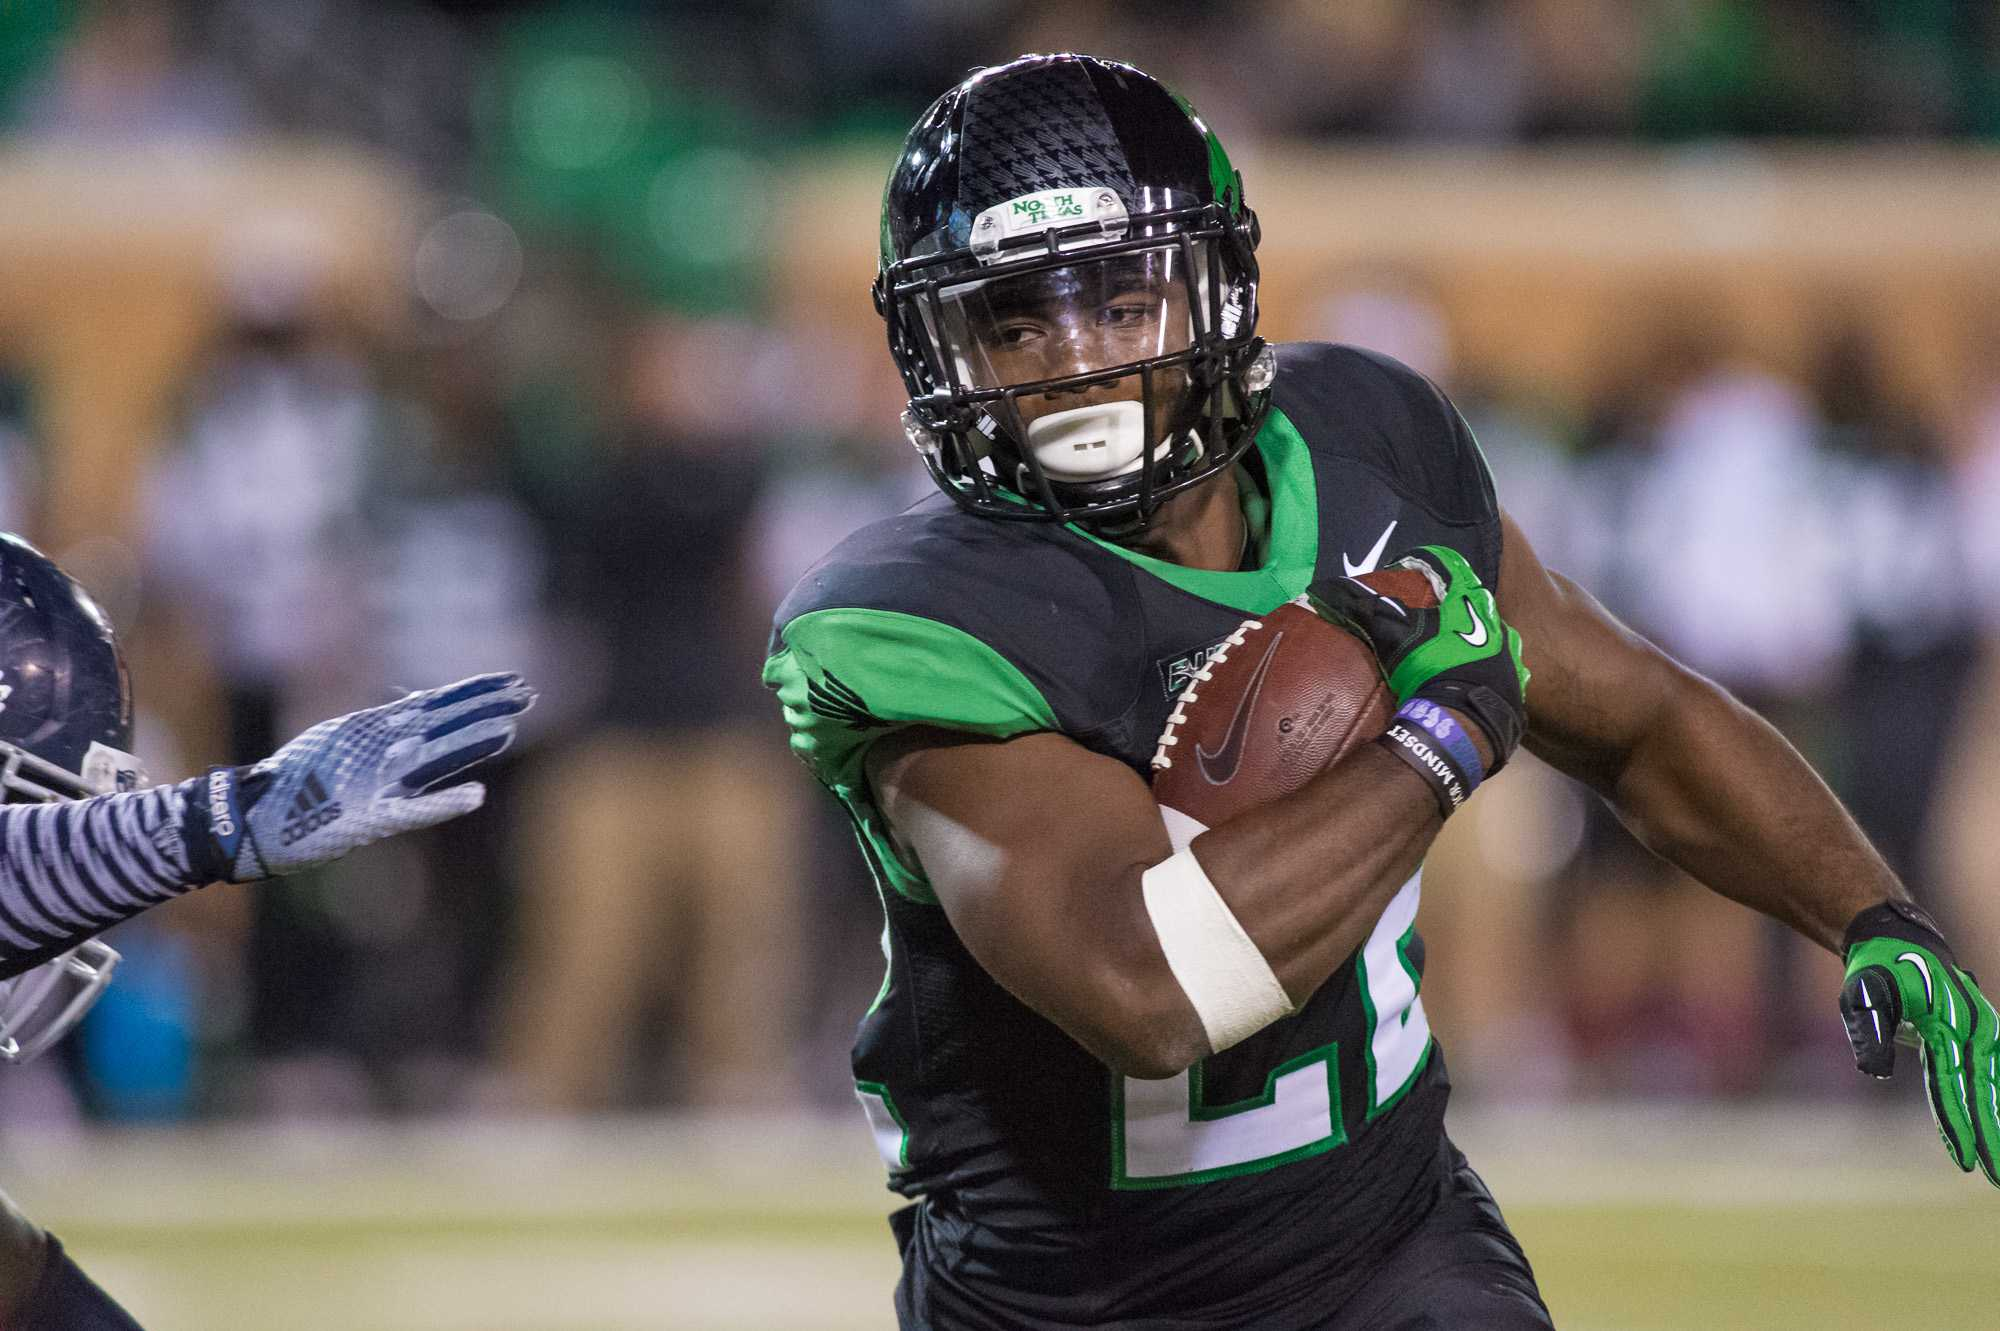 [ Max Jackson | Photo Editor ] North Texas running back Antoinne Jimmerson rushed for 114 yards with 17 carries against FAU.